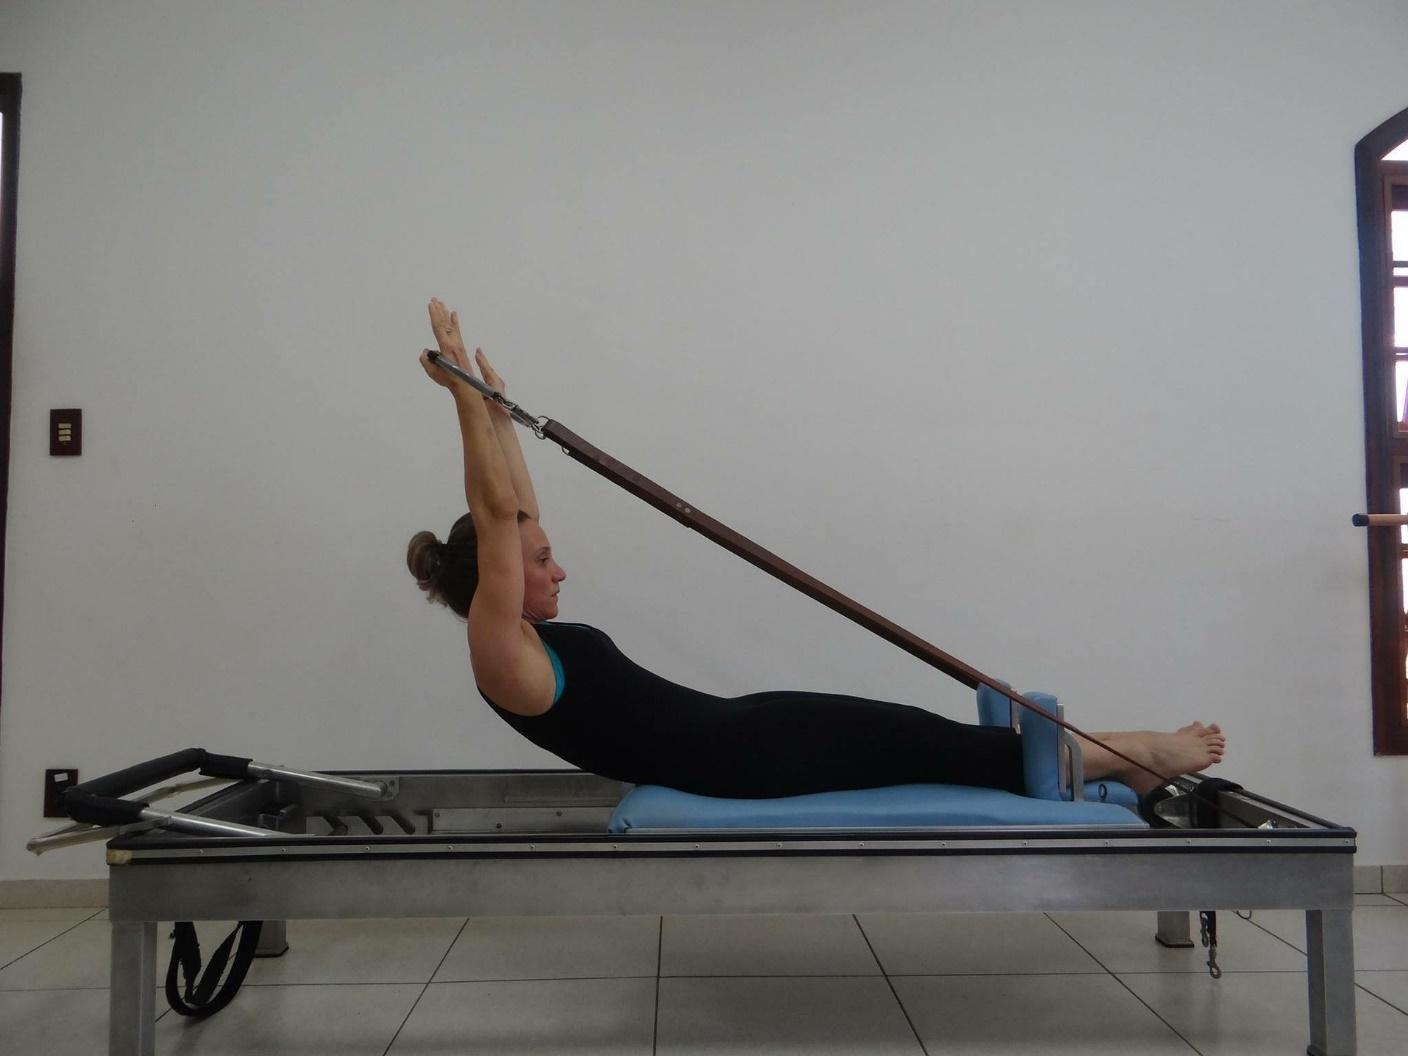 C:\Users\Bala\Downloads\pilates-2259761_1920.jpg